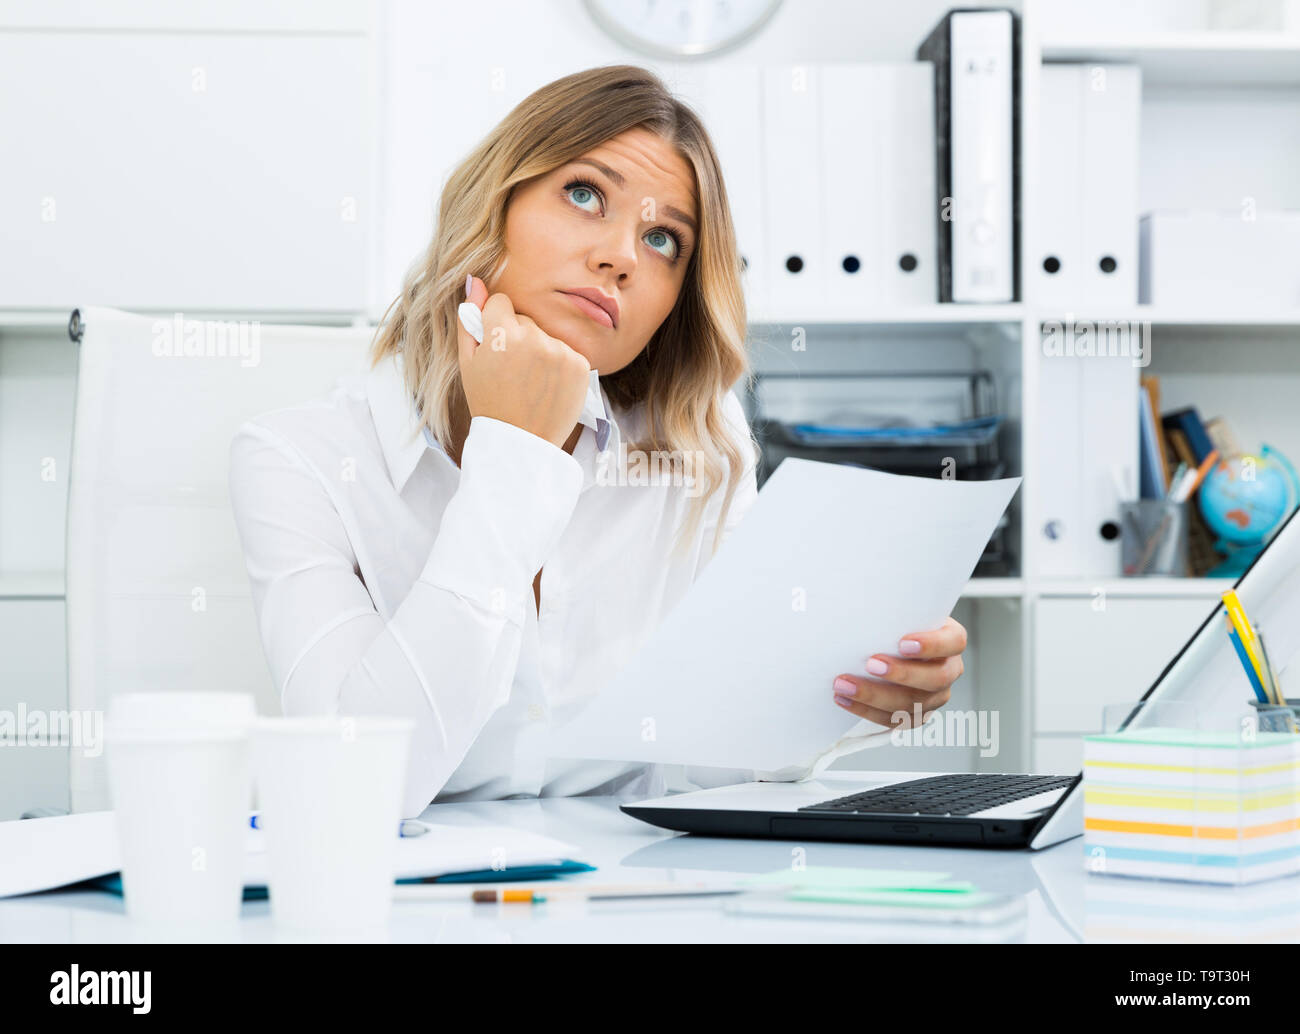 Thoughtful young girl in corporate-type clothes in well-lit office - Stock Image